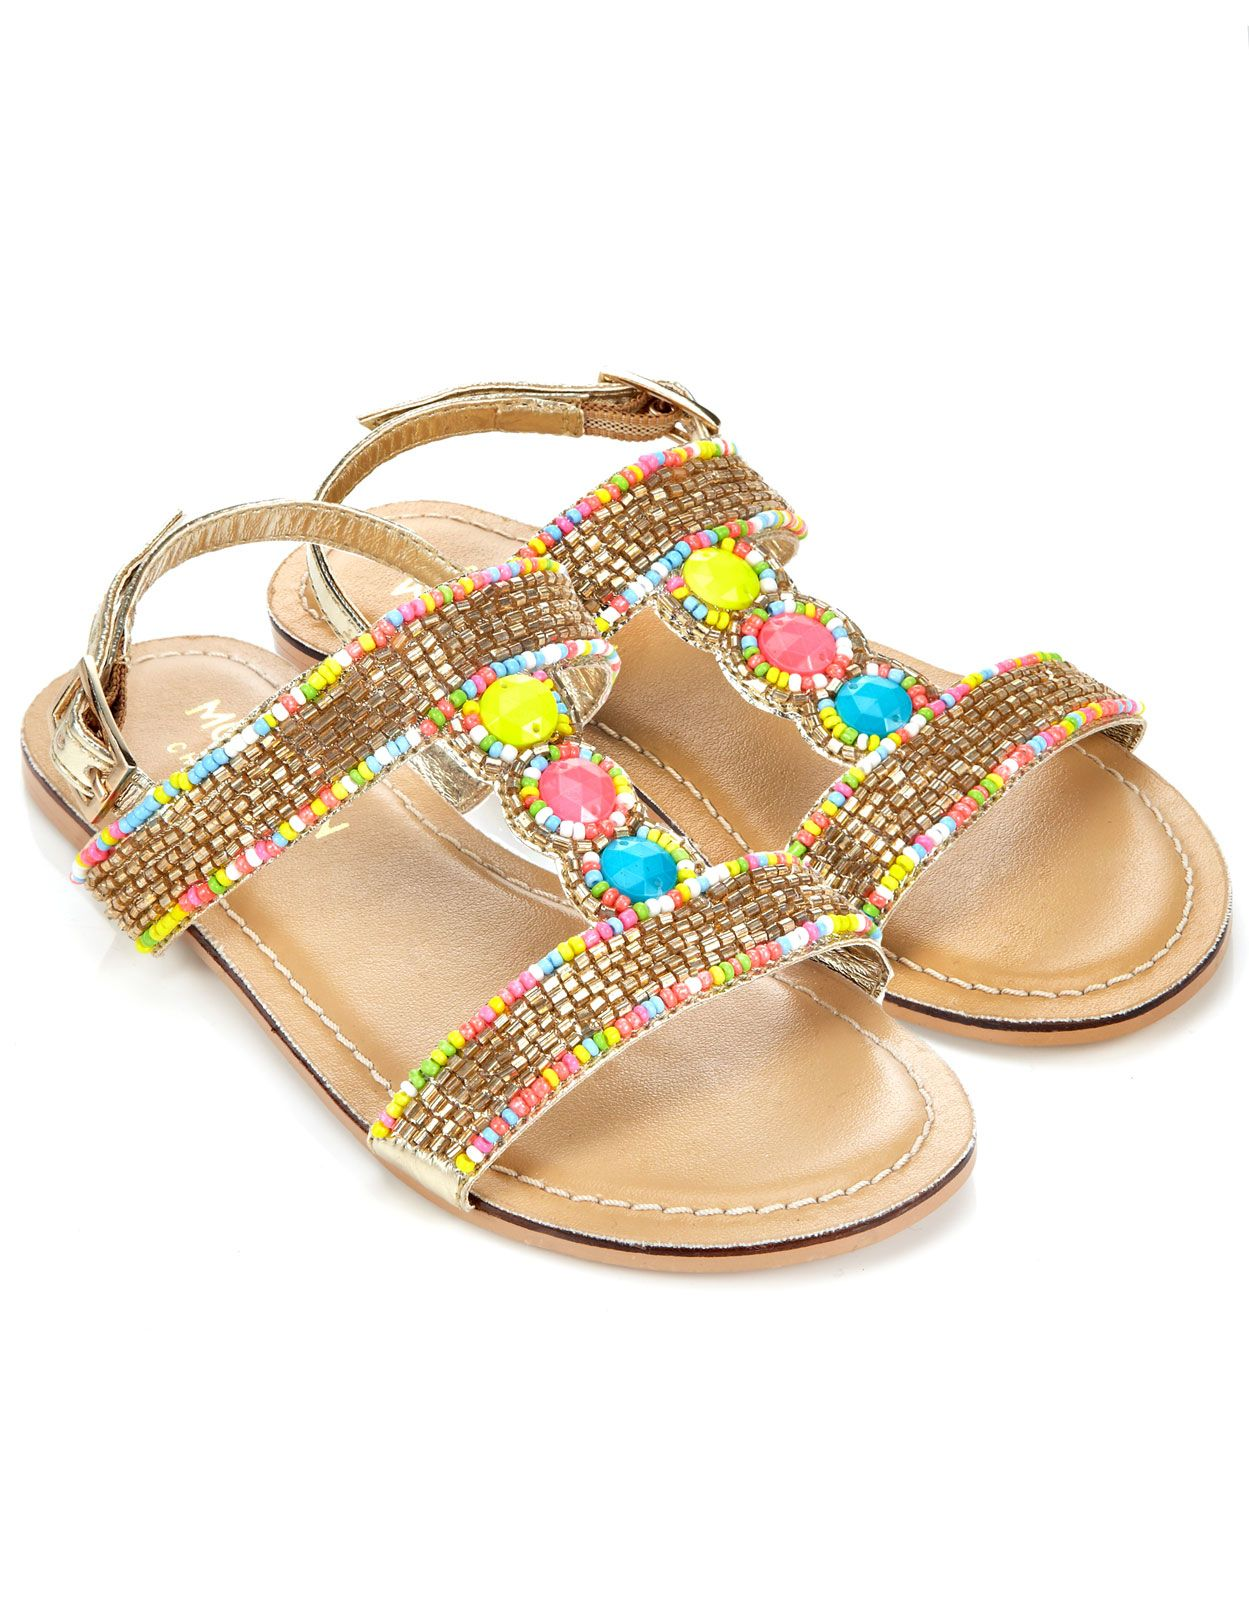 79068ab507524 Bright Beaded Sandal